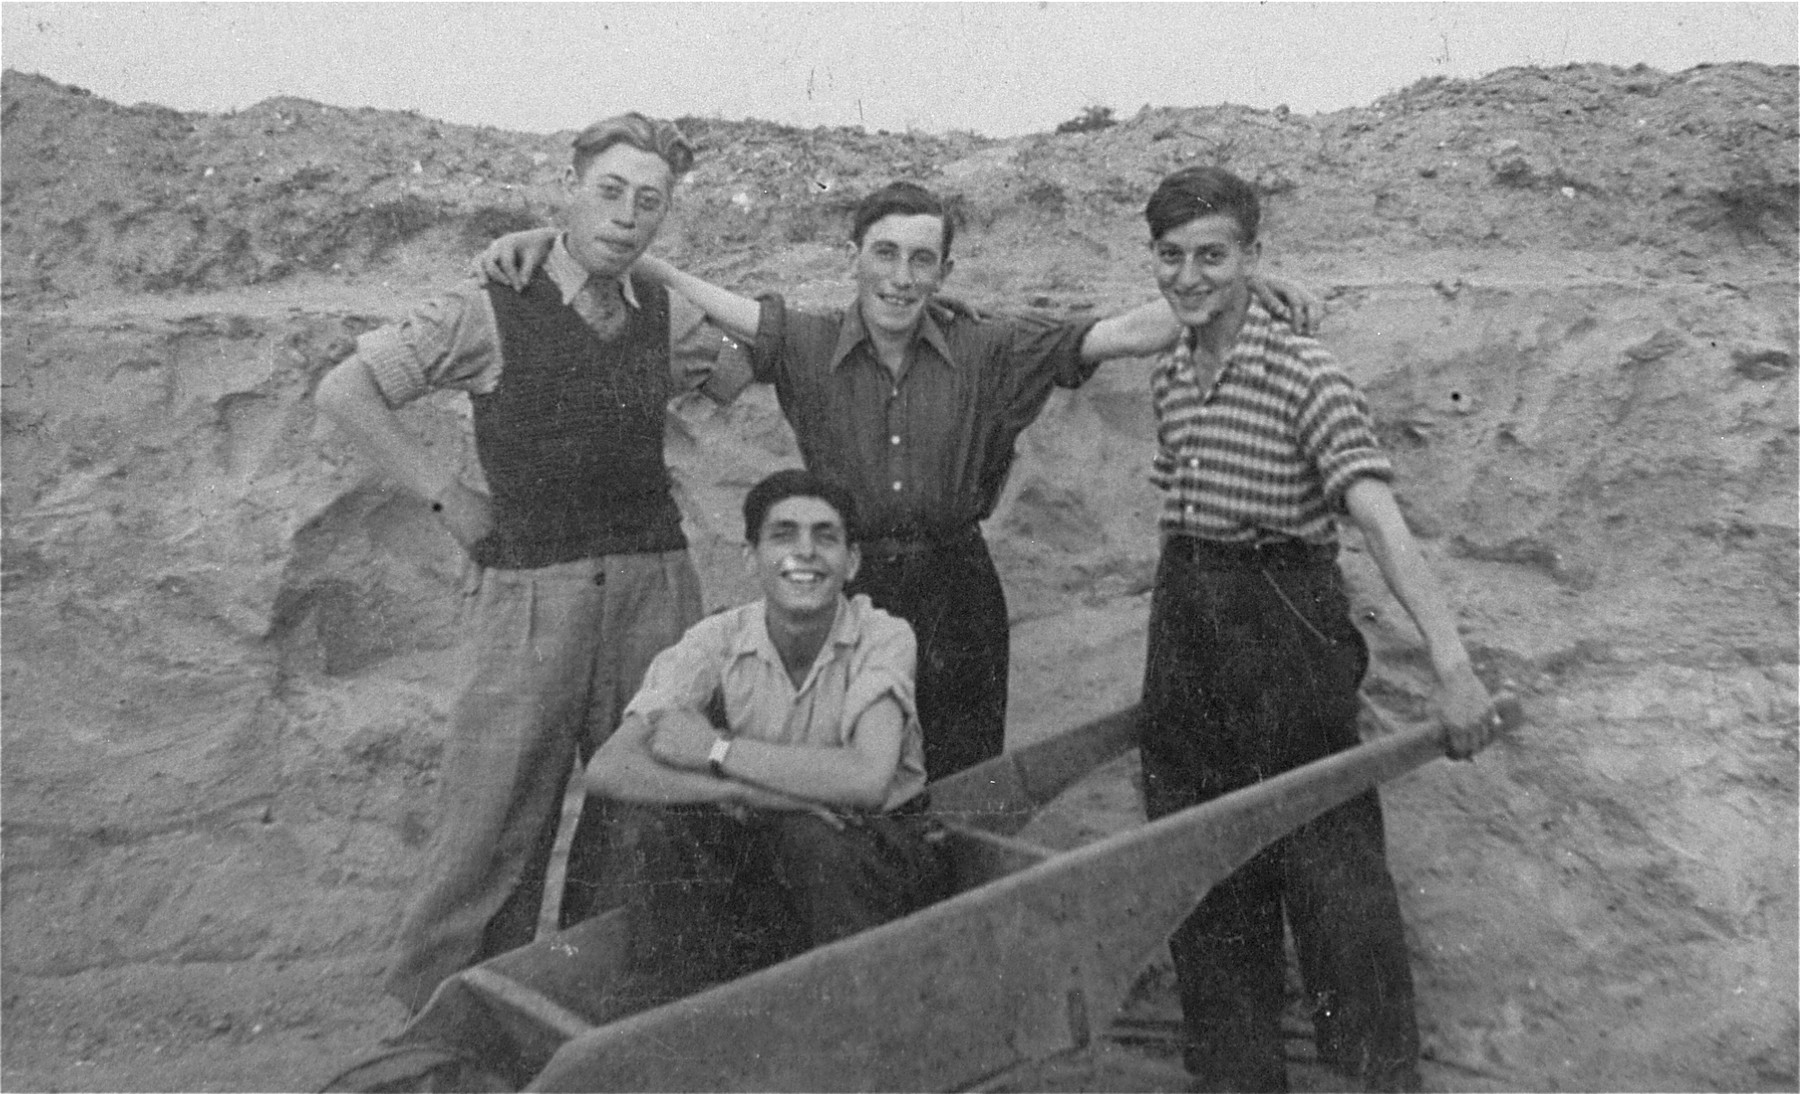 Four members of the Gordonia Zionist youth movement pose in a field in the Marysin quarter of the Lodz ghetto.   Pictured standing from left to right are: Israel Weinberg, Shlomo Flam and Ariel Schwartz; sitting in the wheelbarrow is Menachem Fogel (who later perished).